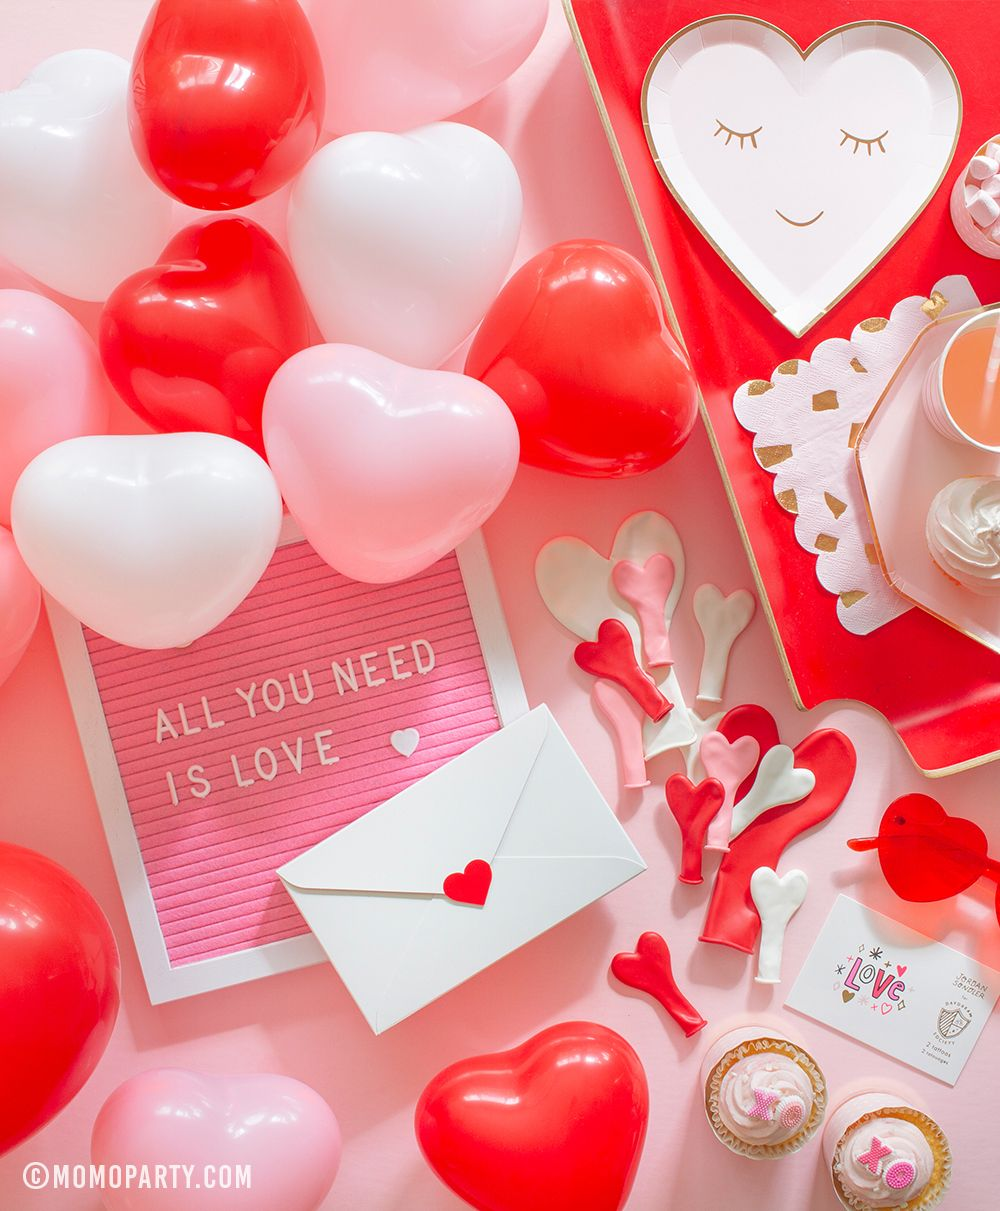 A table with adorable party goods for your Valentine's Day or Galentine's Day celebration. Check out momoparty.com for more! #galentinesday #valentines #valentinesdaybrunch